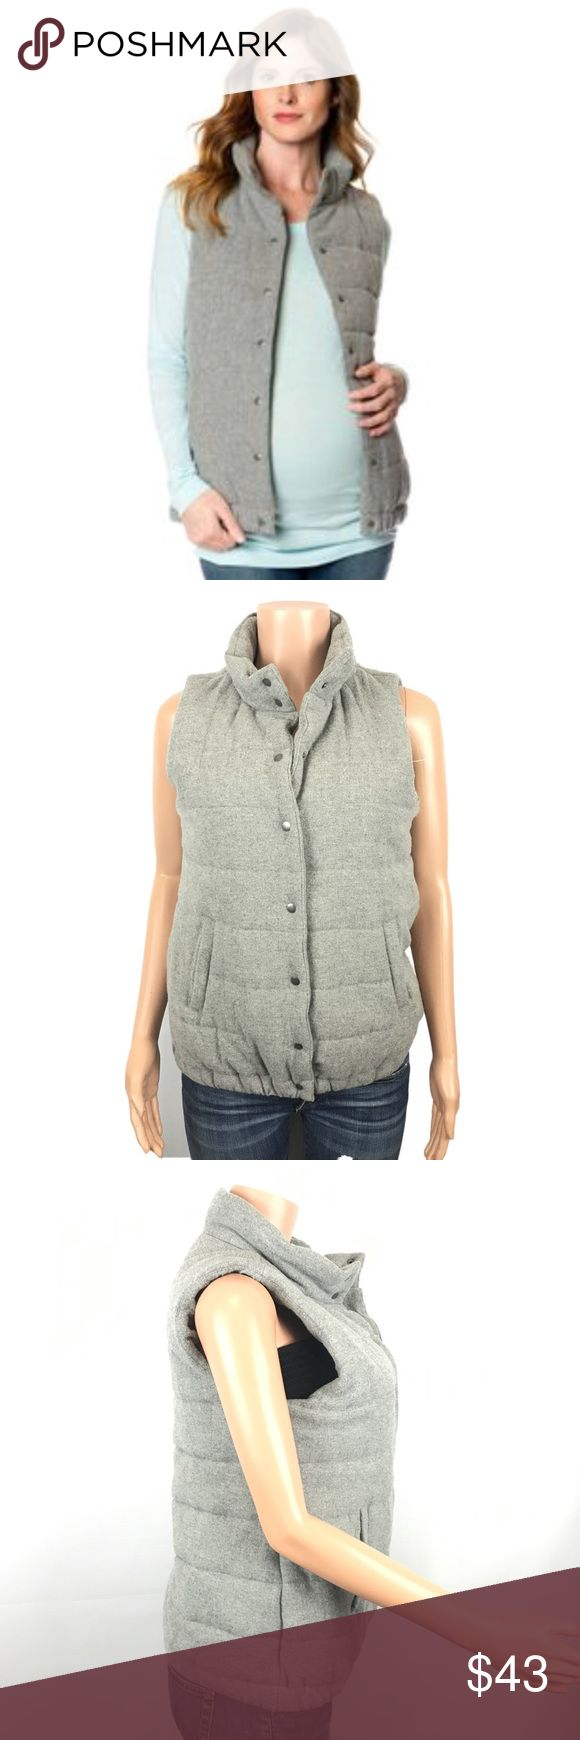 A pea in the pod wool blend puffer vest Nice wool blend puffer vest I. Great condition size medium has a elastic band on the hem.   FYI 📌📌📌📌📌 Things to keep in mind when shopping my closet  ✔️  all item come from a smoke free pet free clean home ✔️ all items shipped same day or next day unless its Friday orders will go out Monday  ✔️ open to offers I do not use the private offer system  ✔️ discounts on bundles  ✔️posh ambassador A Pea in the Pod Jackets & Coats Vests